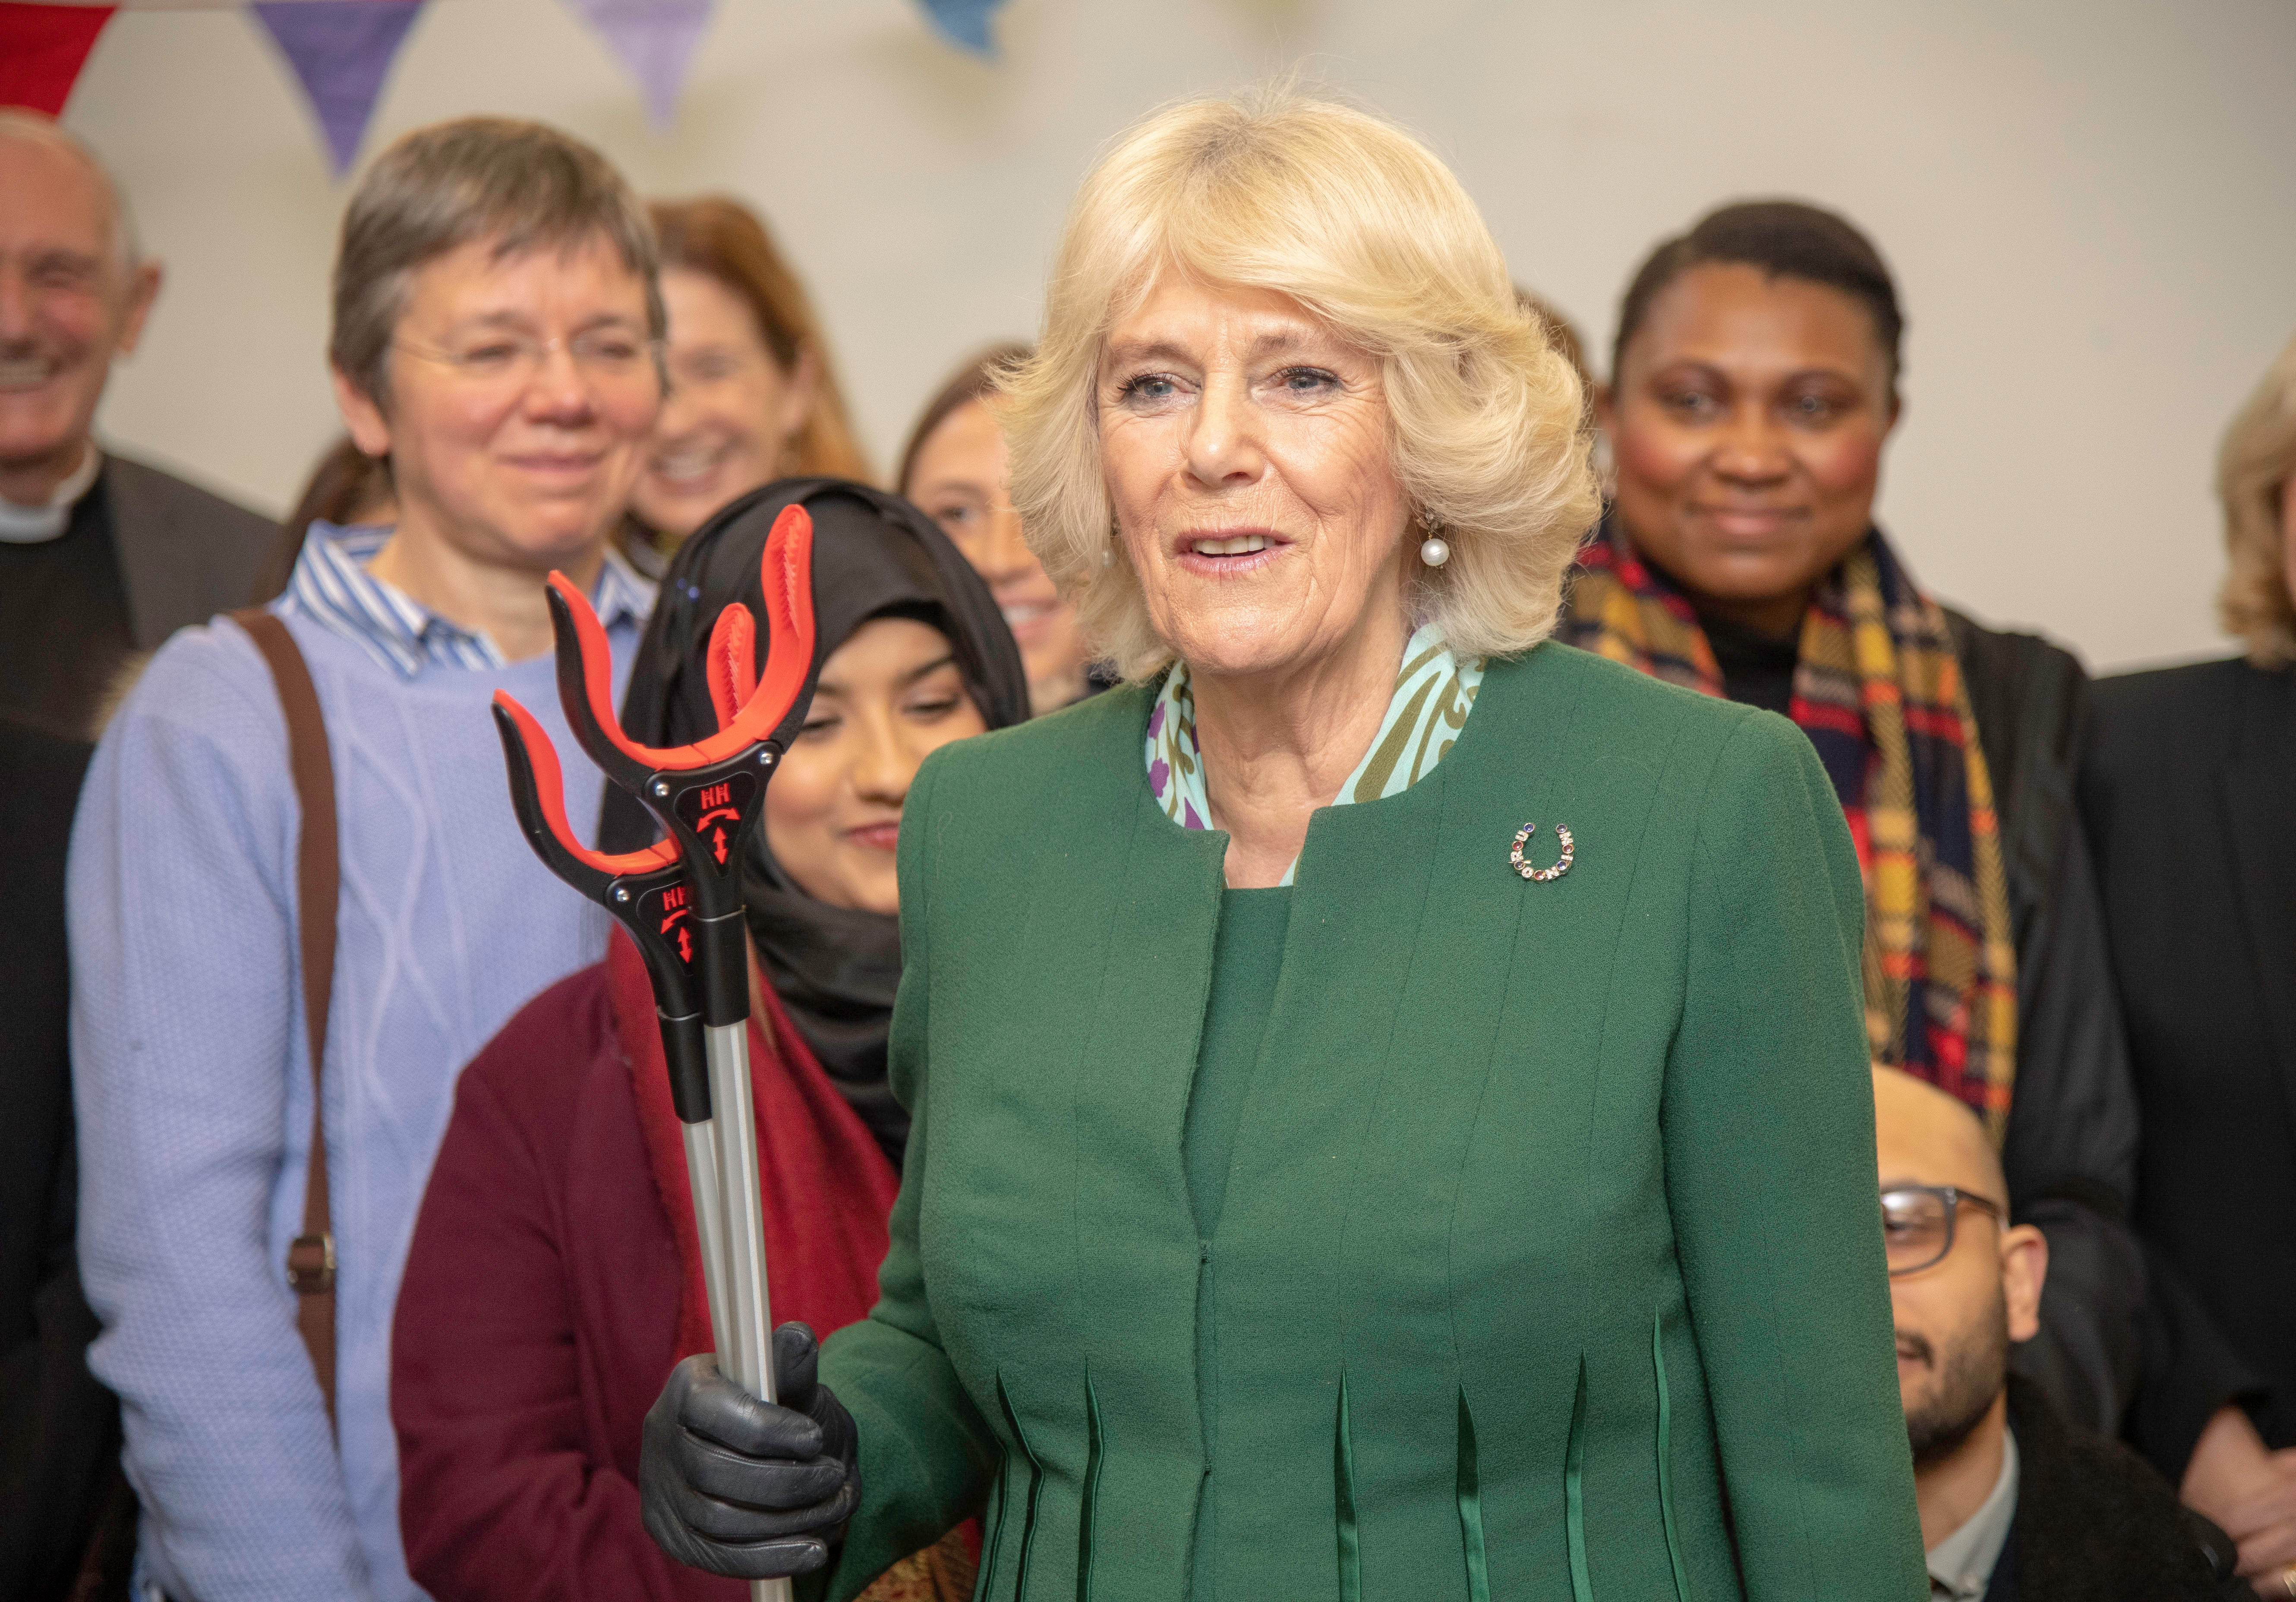 The Duchess of Cornwall met members taking part in the Litter Pick